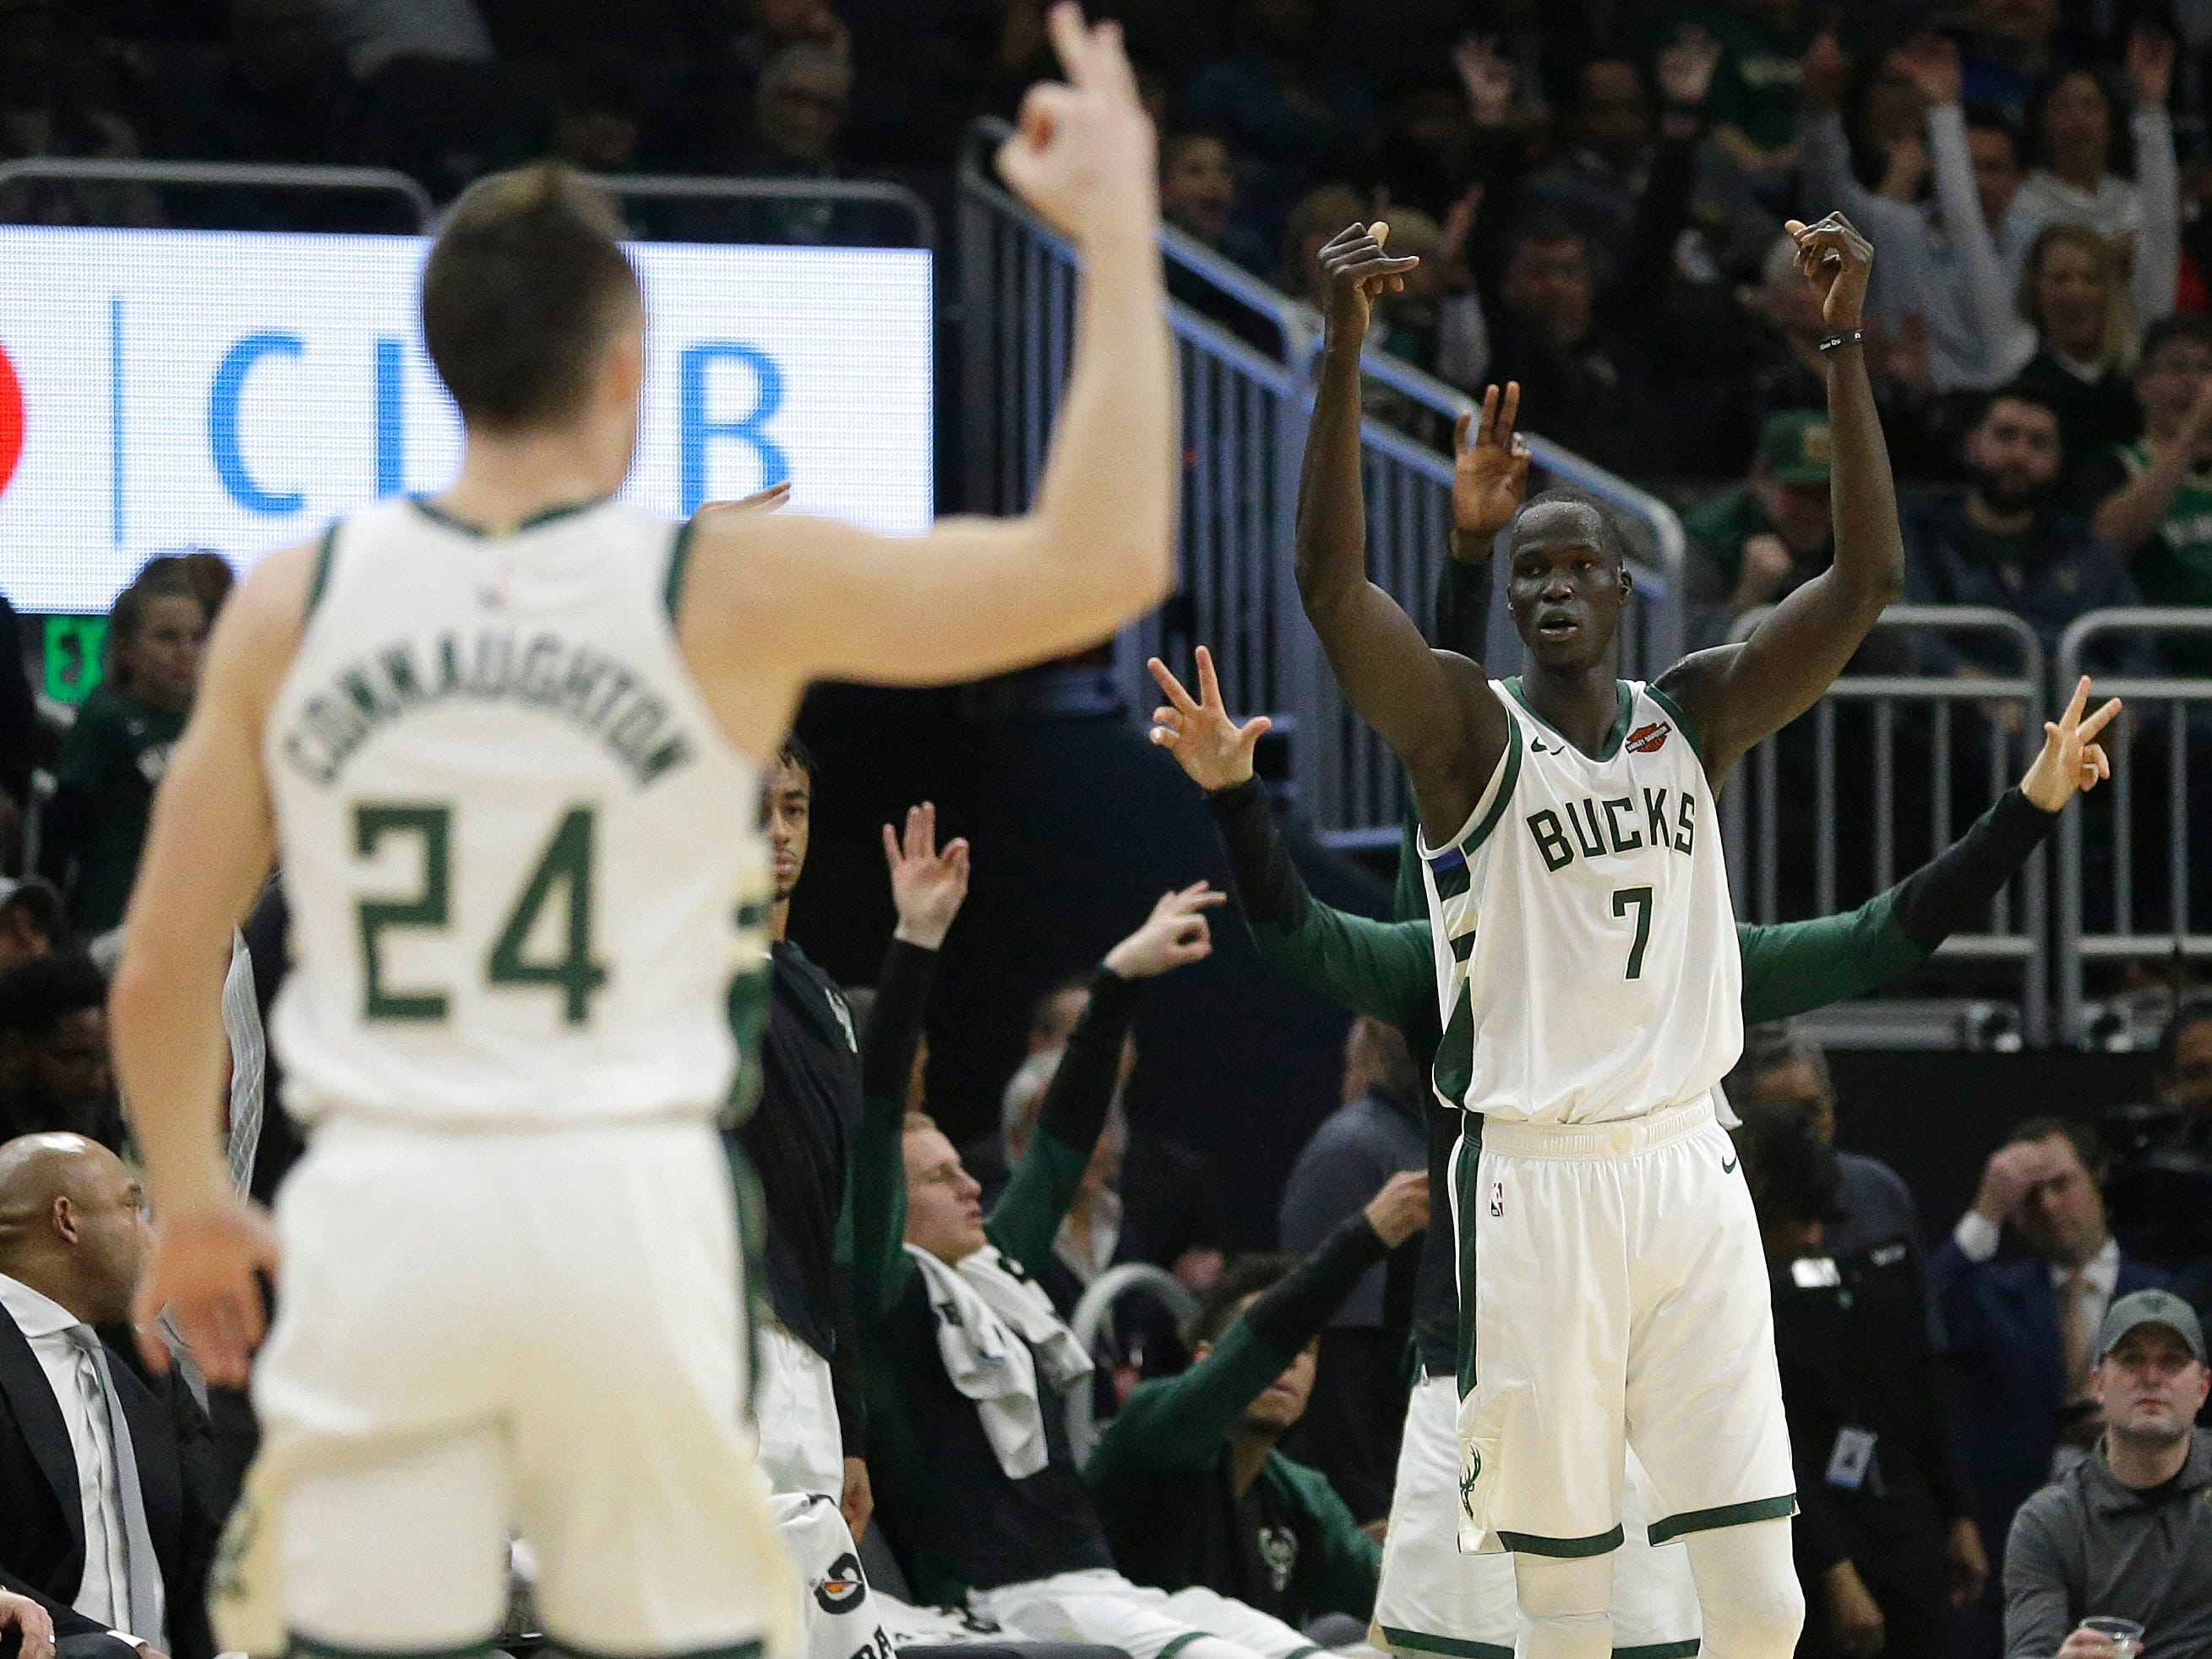 Milwaukee's Thon Maker (7) reacts after making a 3-pointer during the first half.